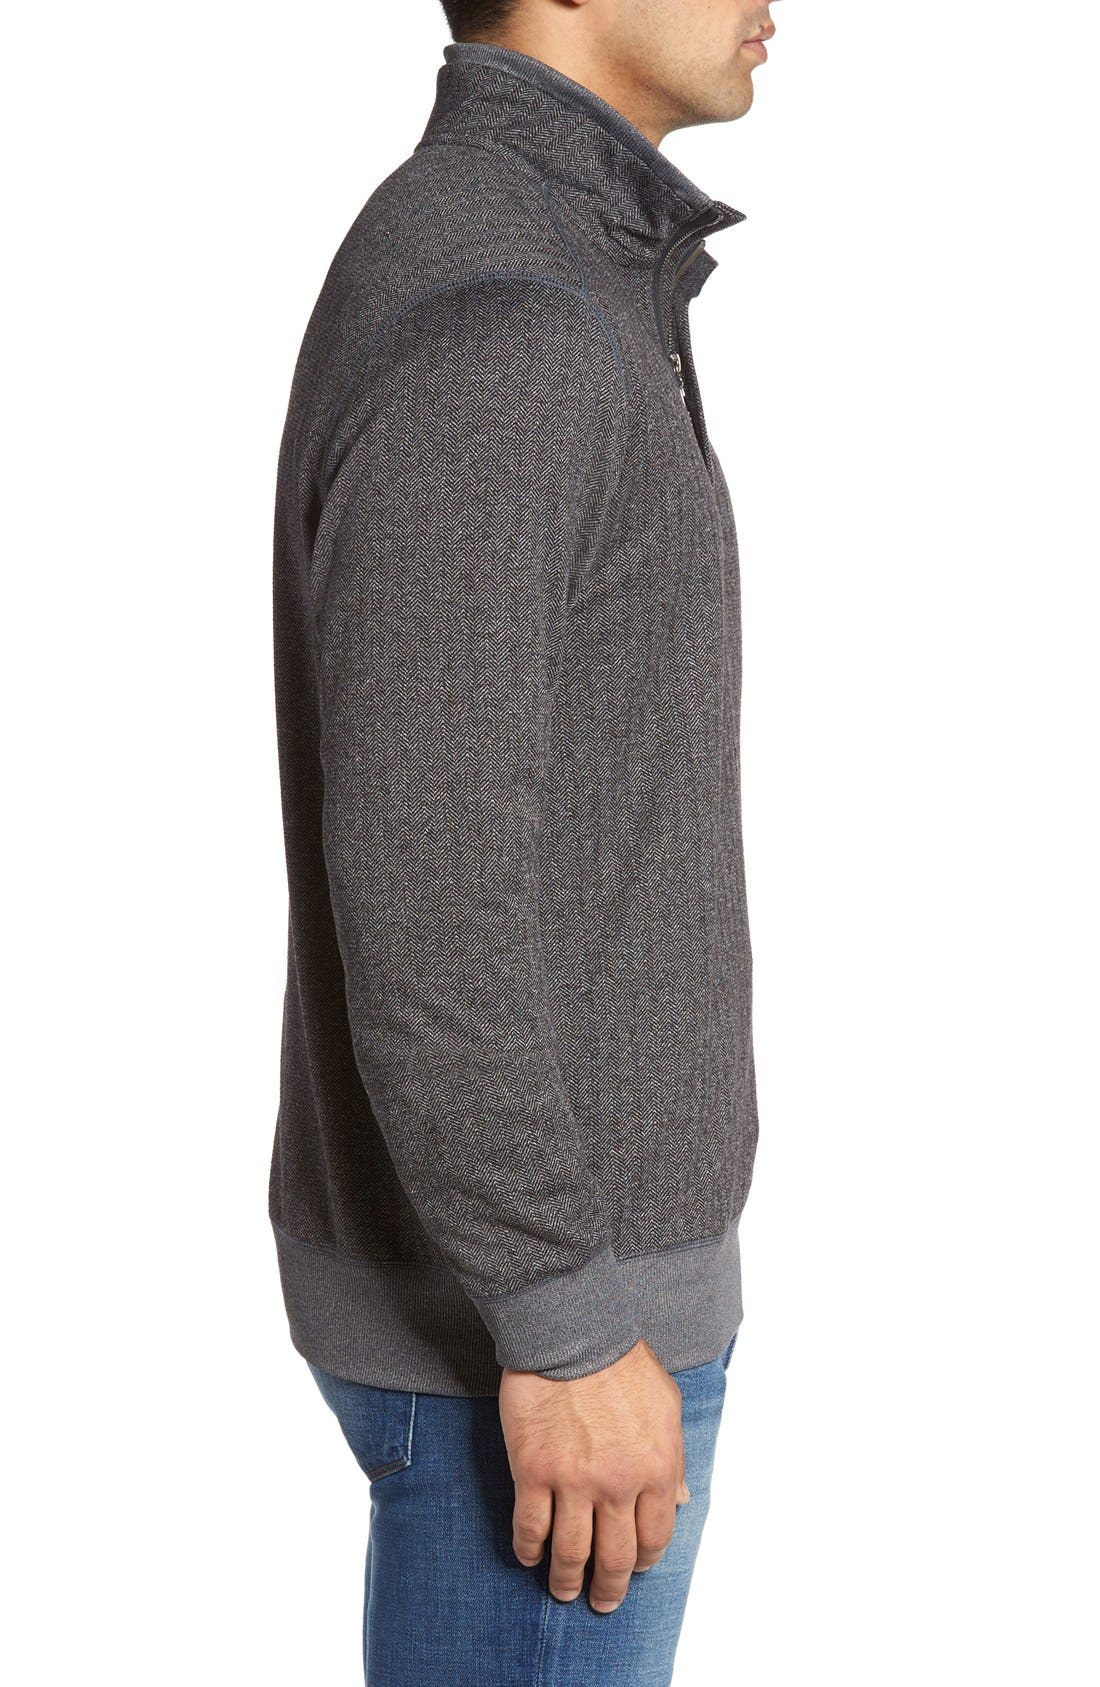 Pro Formance Quarter Zip Sweater,                             Alternate thumbnail 9, color,                             050